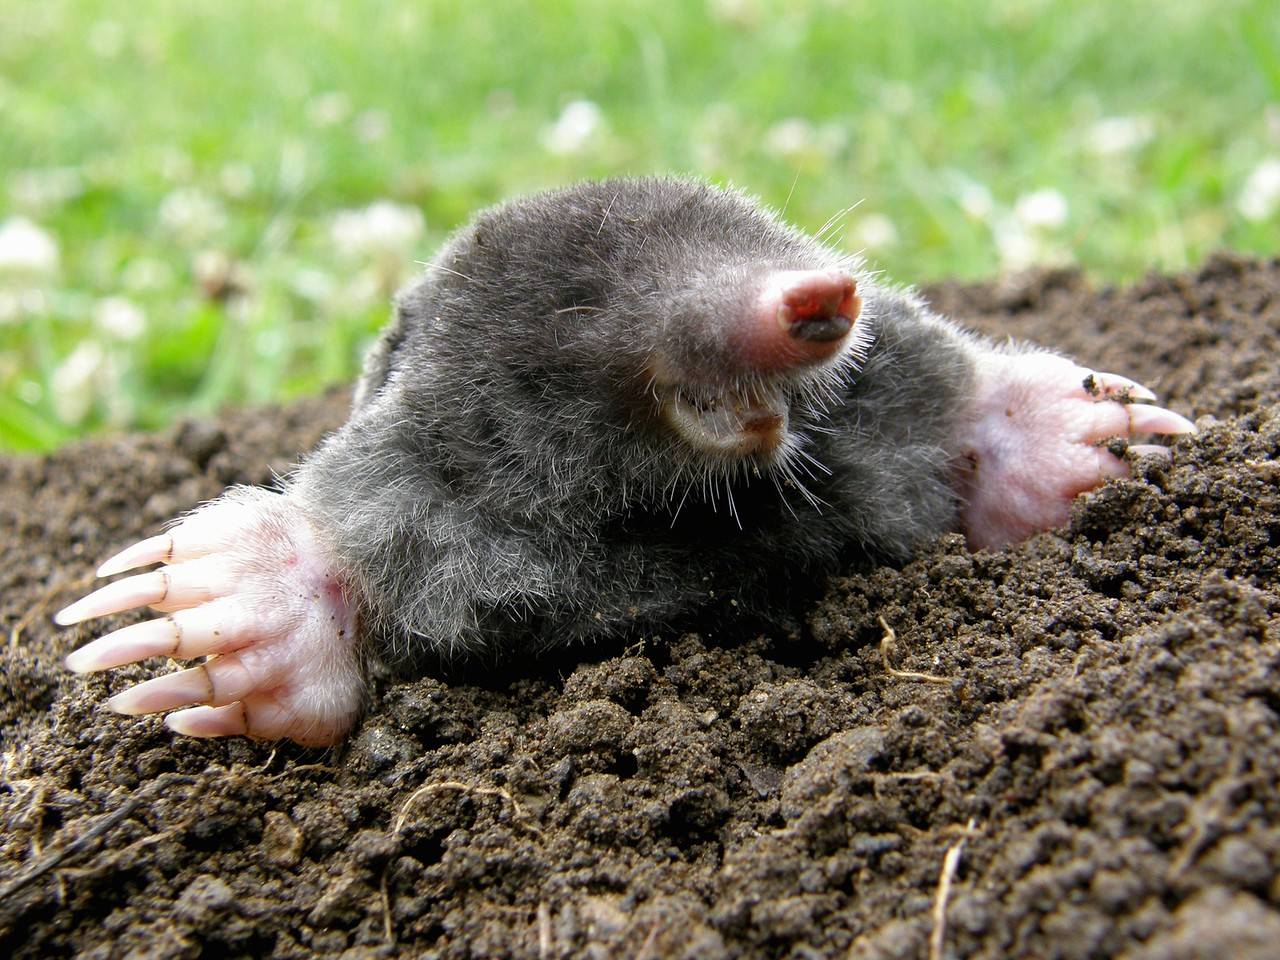 Laughing Mole